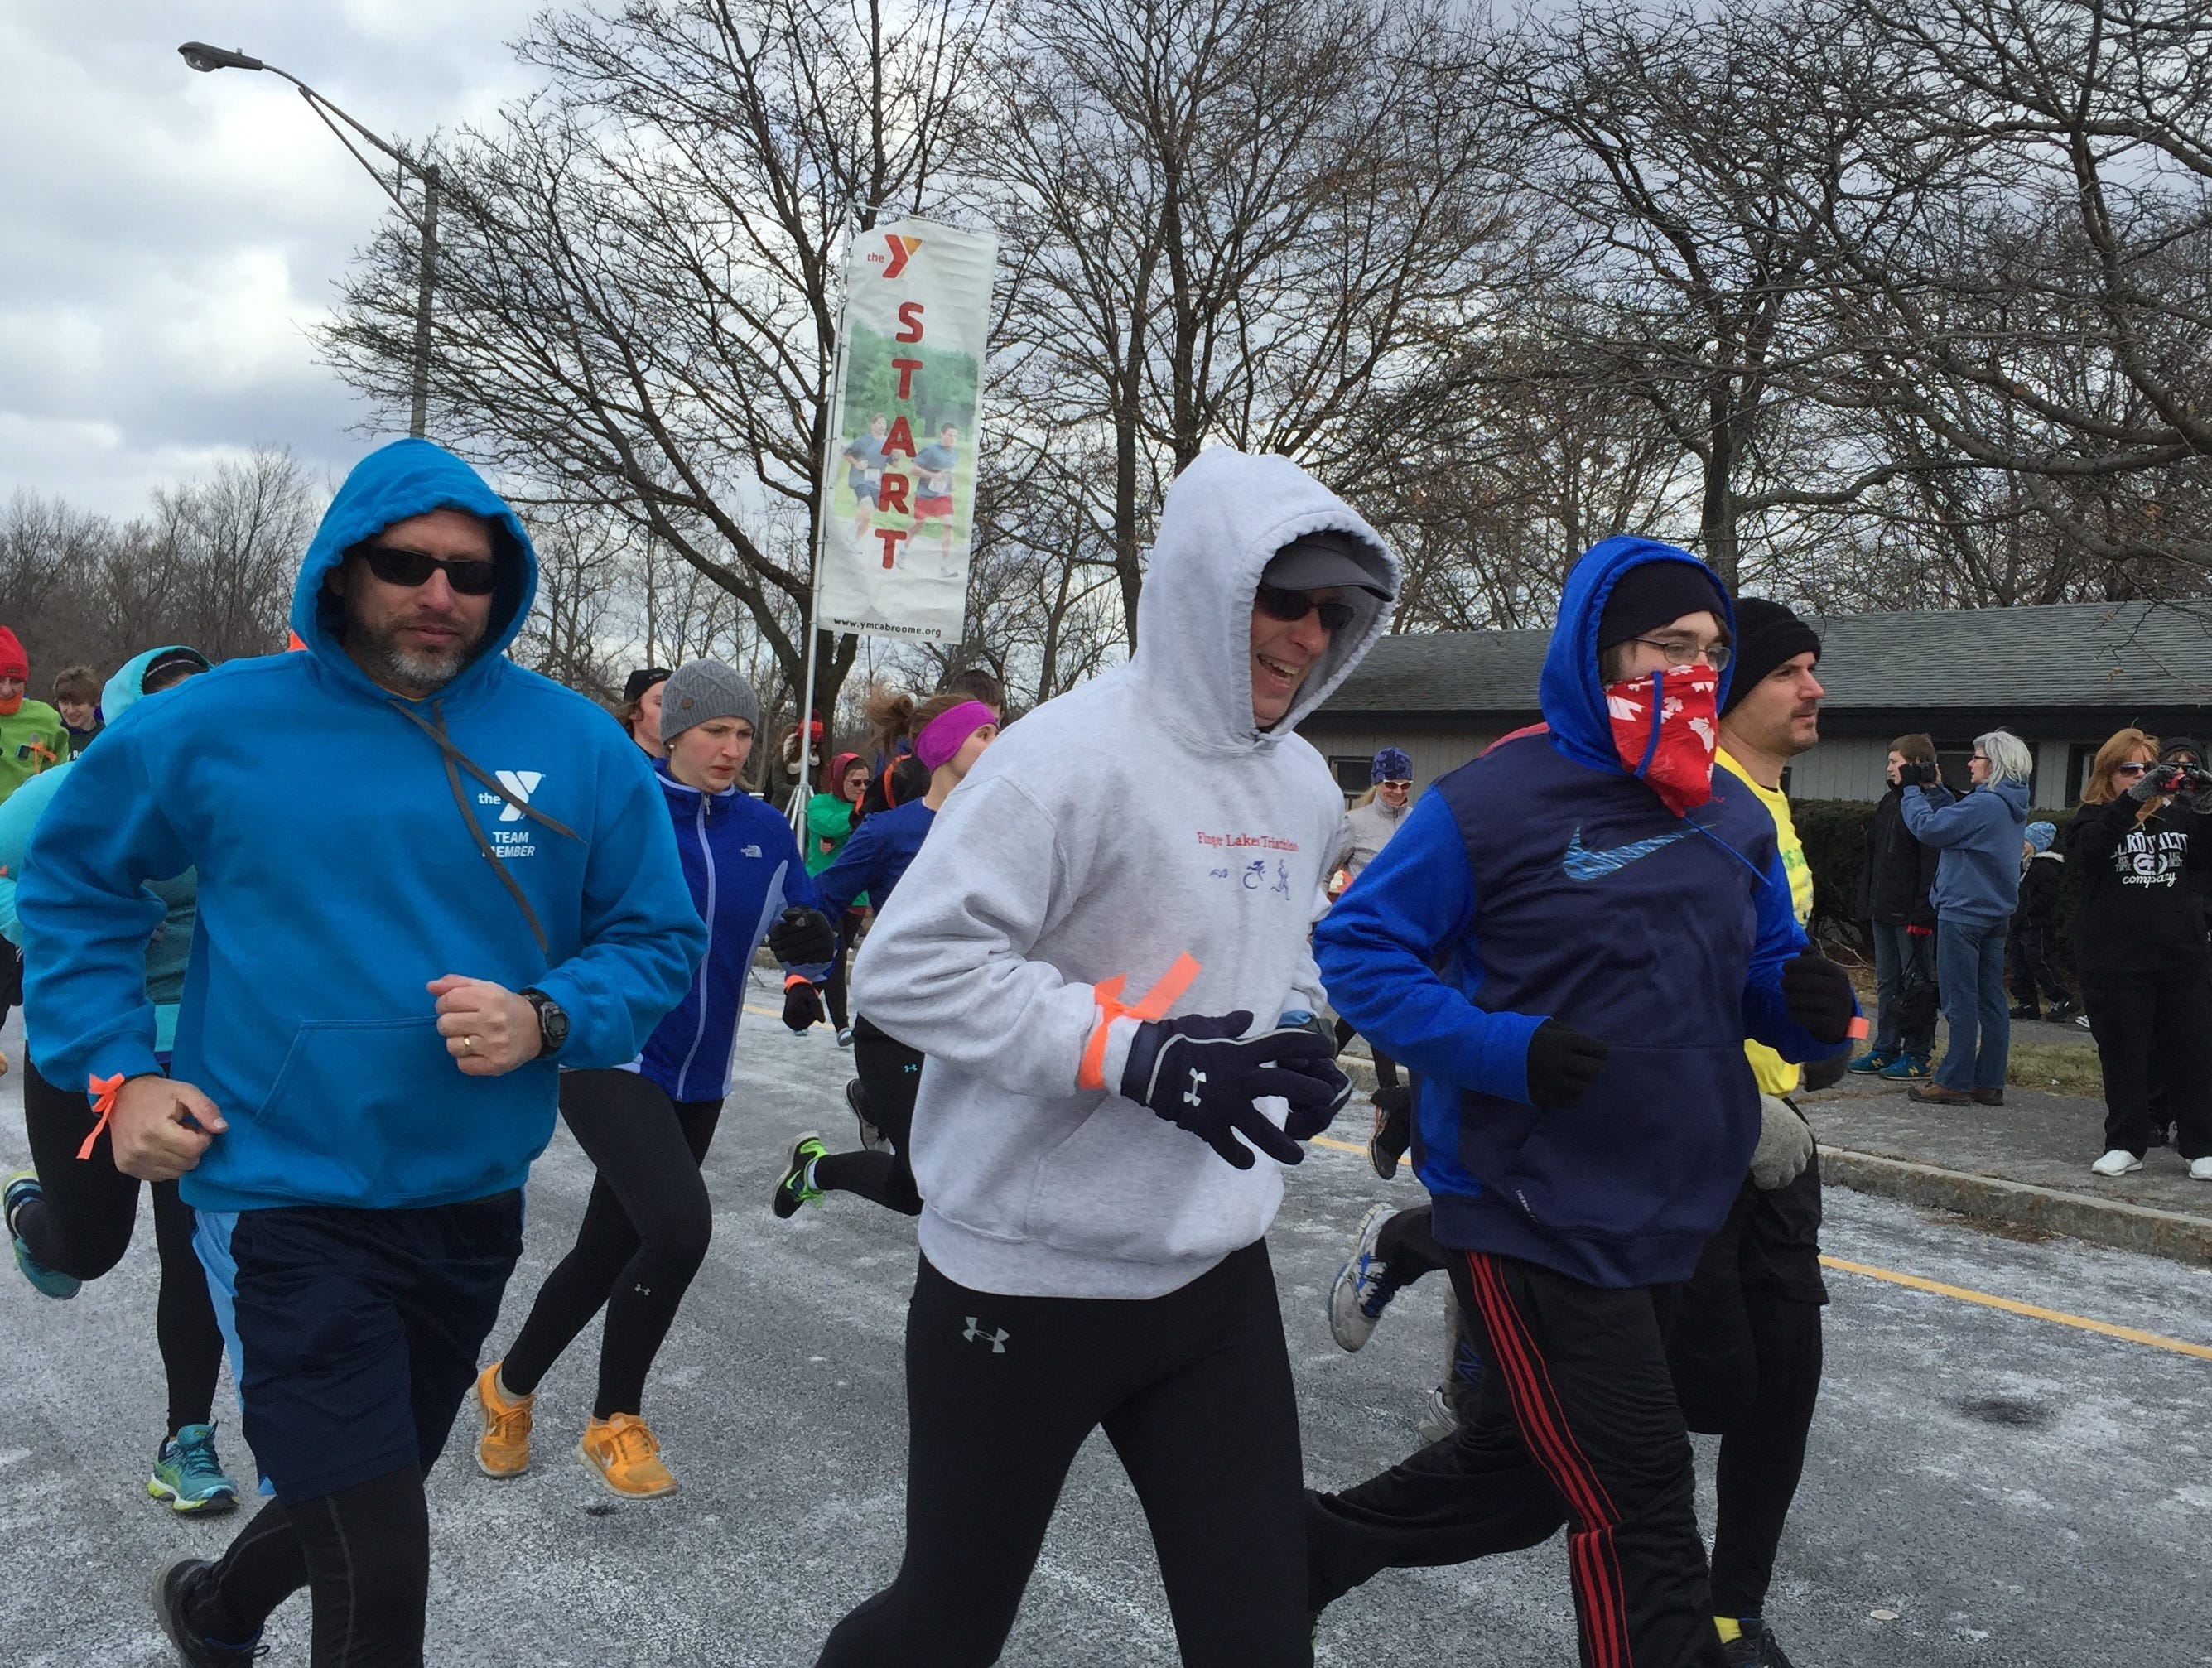 From 2015: More than 100 people braved the frigid weather on Wednesday to participate in the YMCA New Year's Resolution Run at Otsiningo Park.